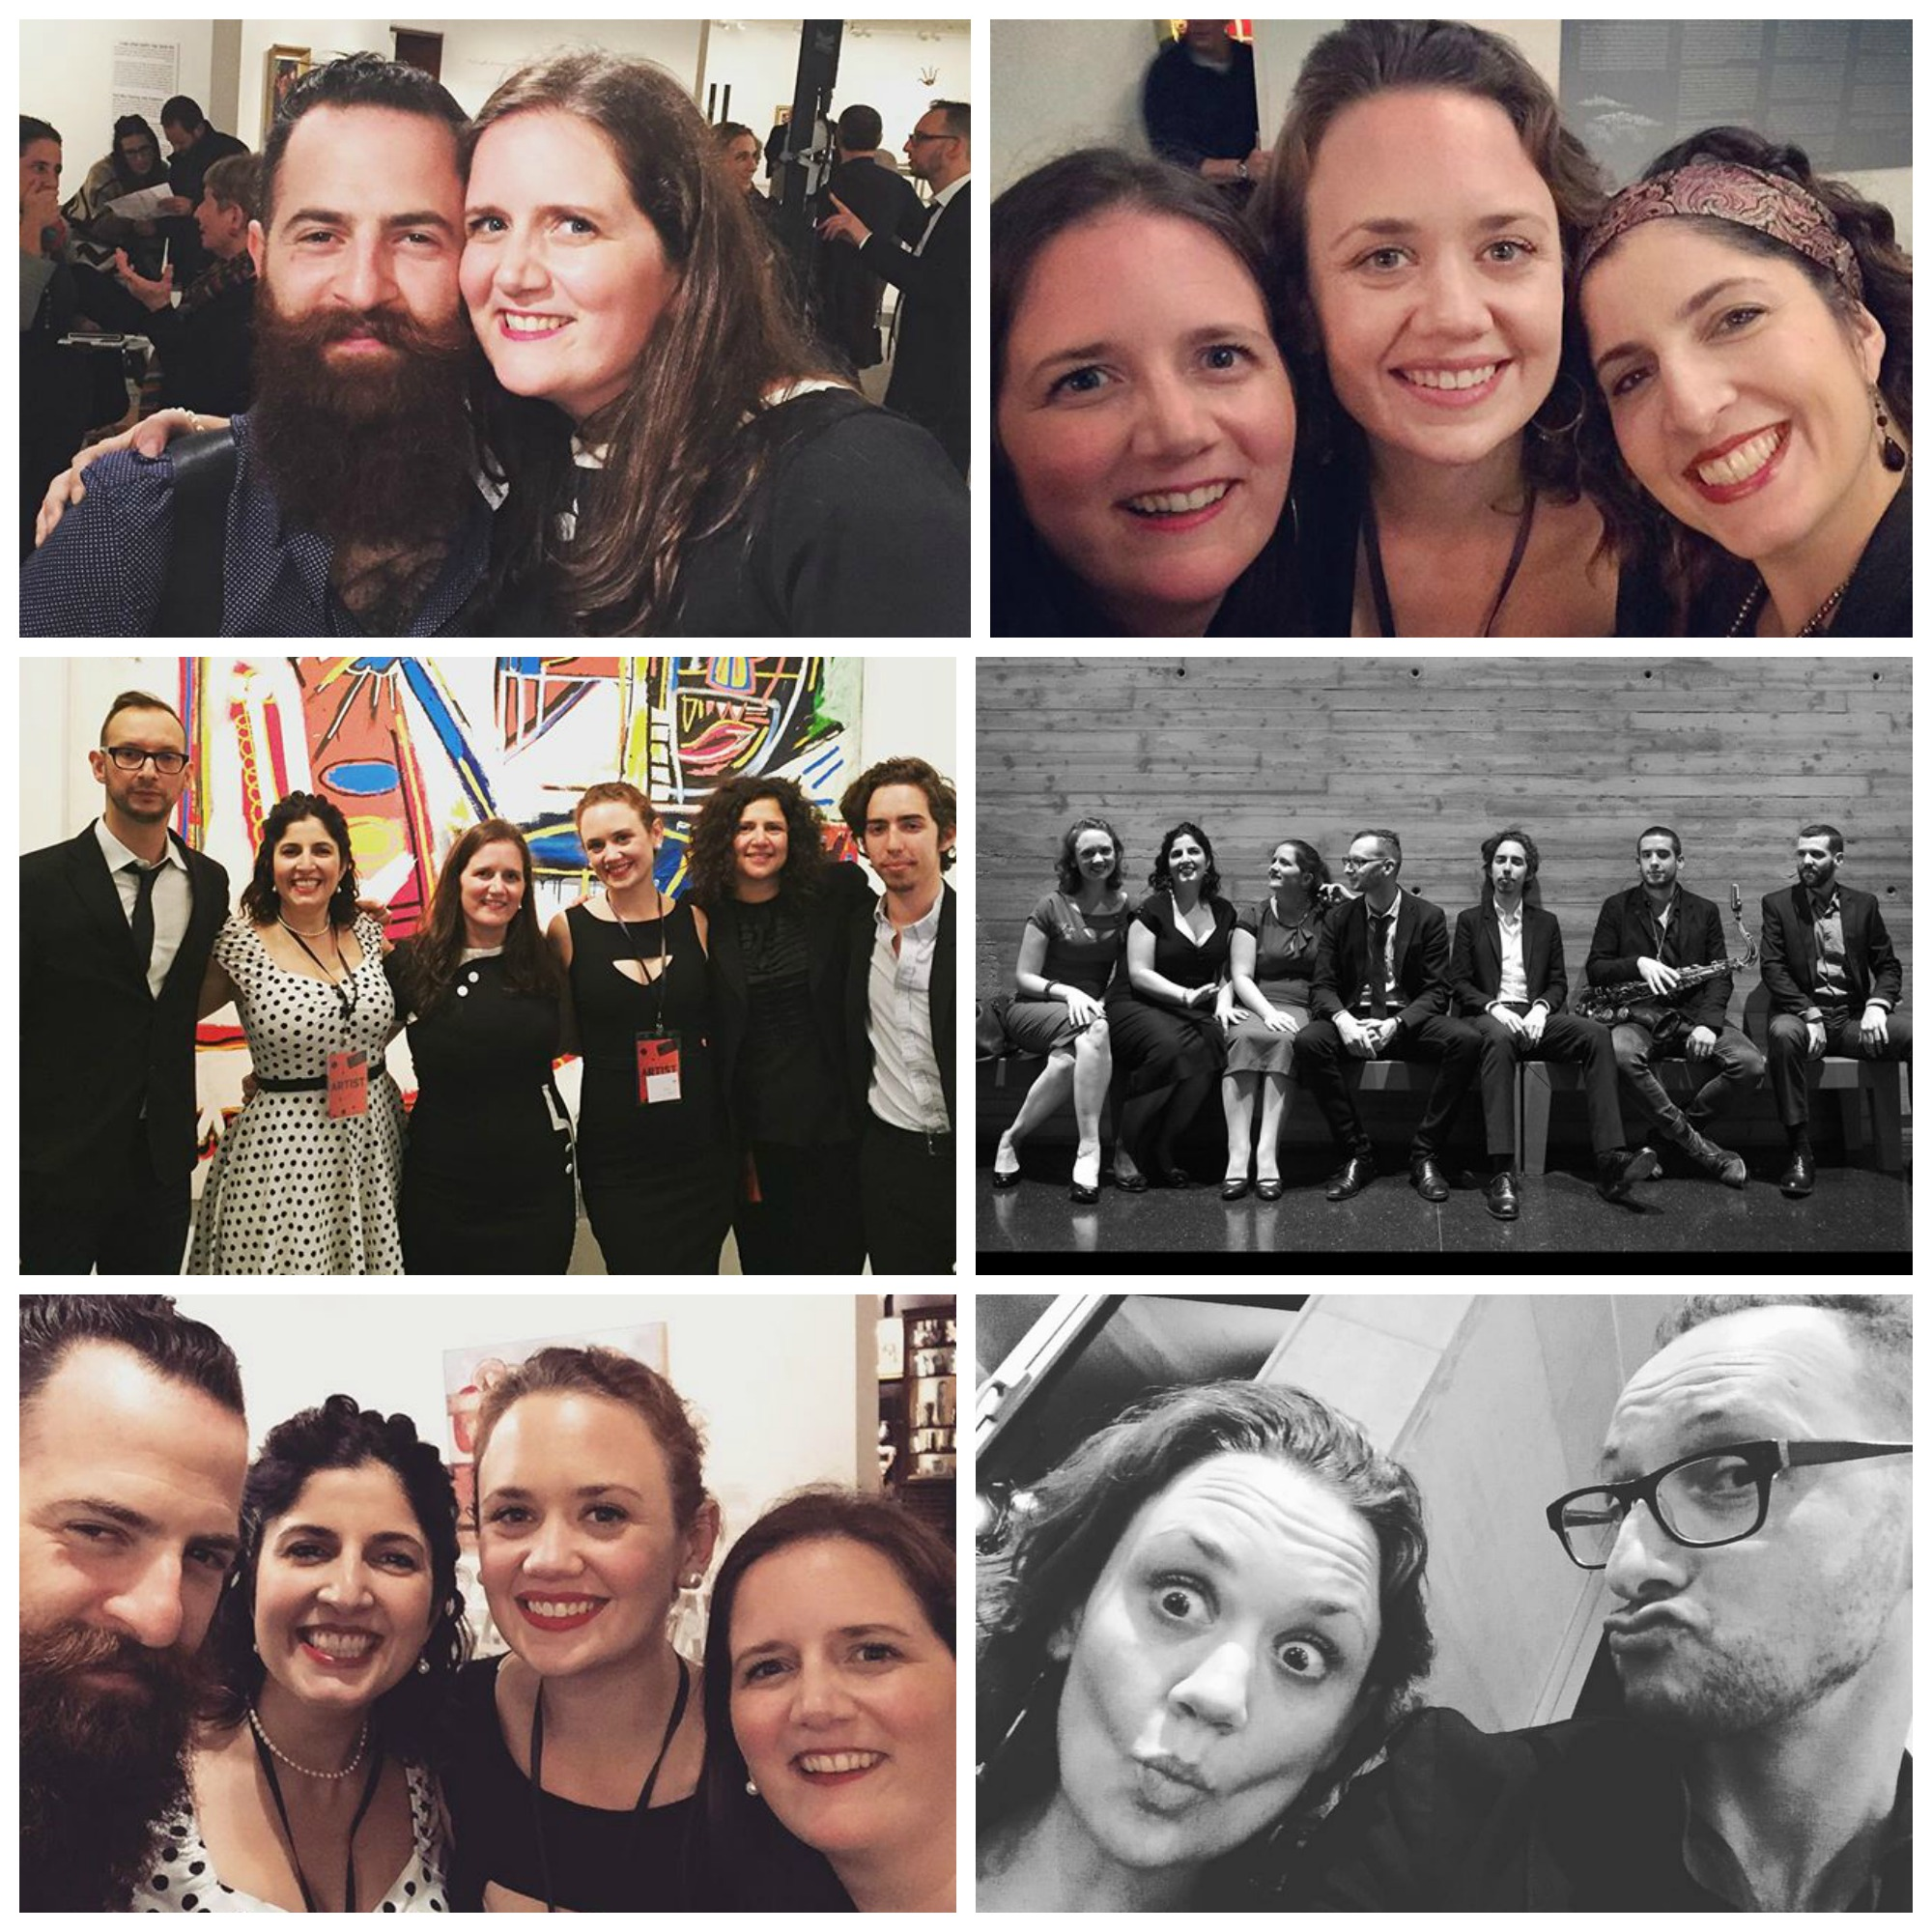 Post-performance photos at the Israel Museum.  Top row: Amy and Avishai (L); the gals of DUCHESS, post-ukulele pop-up concert (R).  Middle row: post-acoustic set in the modern art gallery with bassist Barak Mori, clarinetist Anat Cohen, and pianist Gadi Lehavi (L); the full band, pre-show, photo by Yossi Zwecker (R).  Bottom row: DUCHESS with Avishai (L); Hilary clowning around with Barak (R).